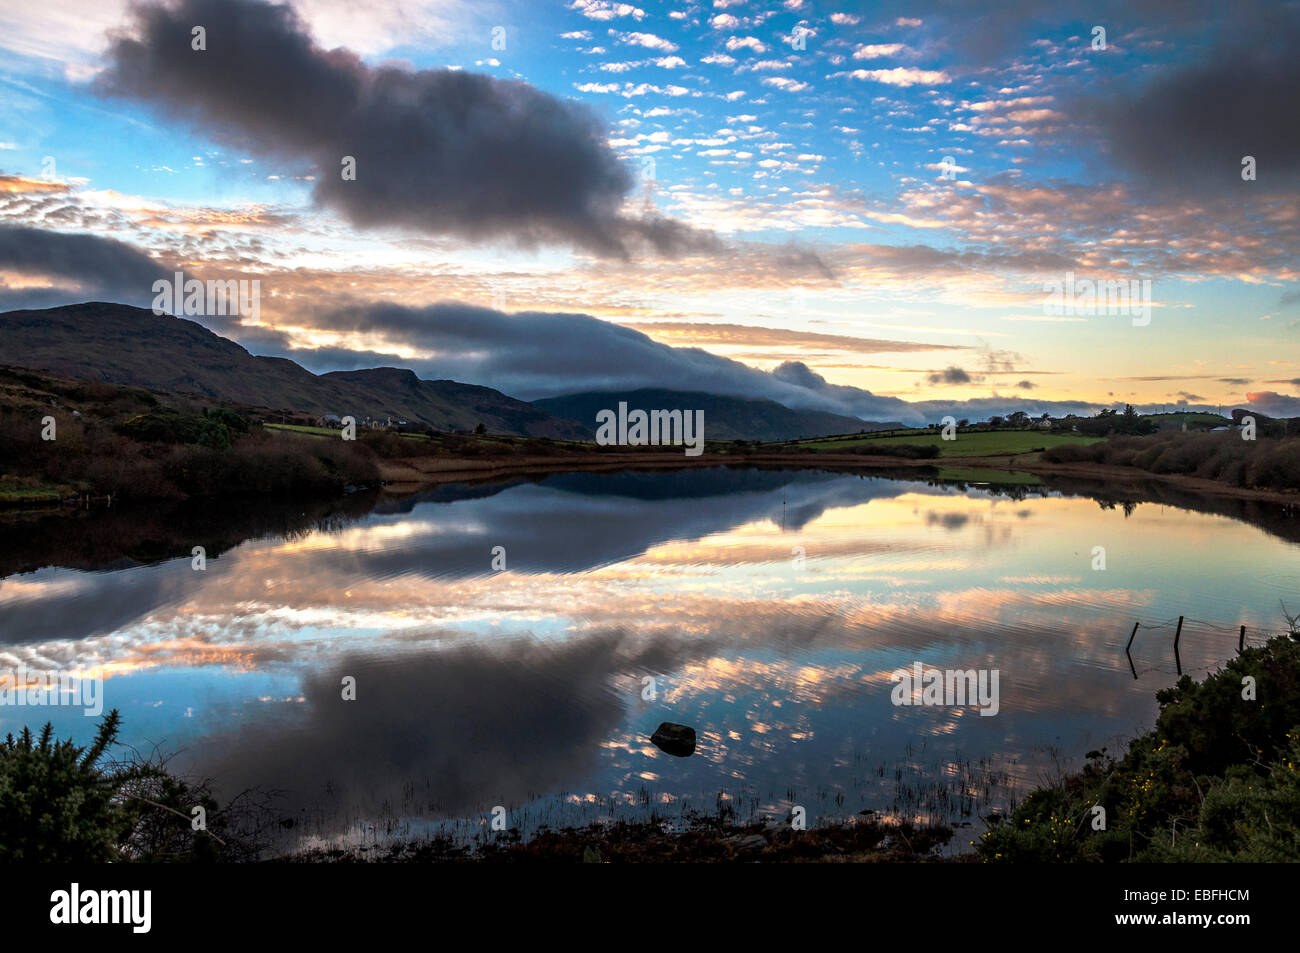 Lake Shanaghan, Ardara, County Donegal, Ireland. 30th November, 2014. Interesting cloud patterns and shapes reflected - Stock Image